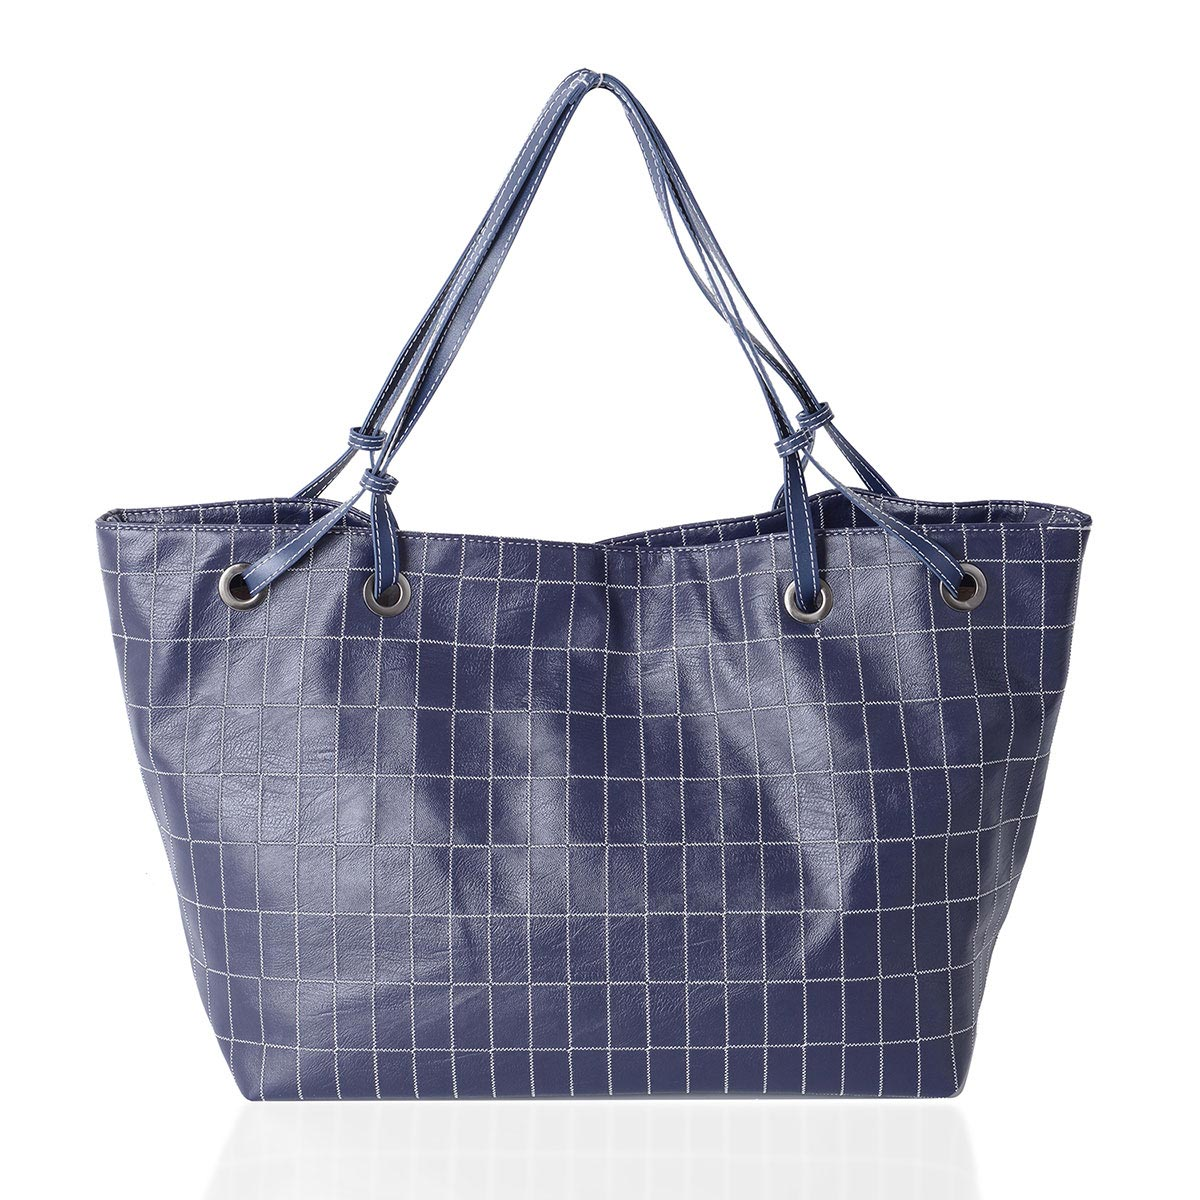 4416b48ec7ca Navy Faux Leather Checker Pattern Tote Bag (21x14.2x11.8 in)